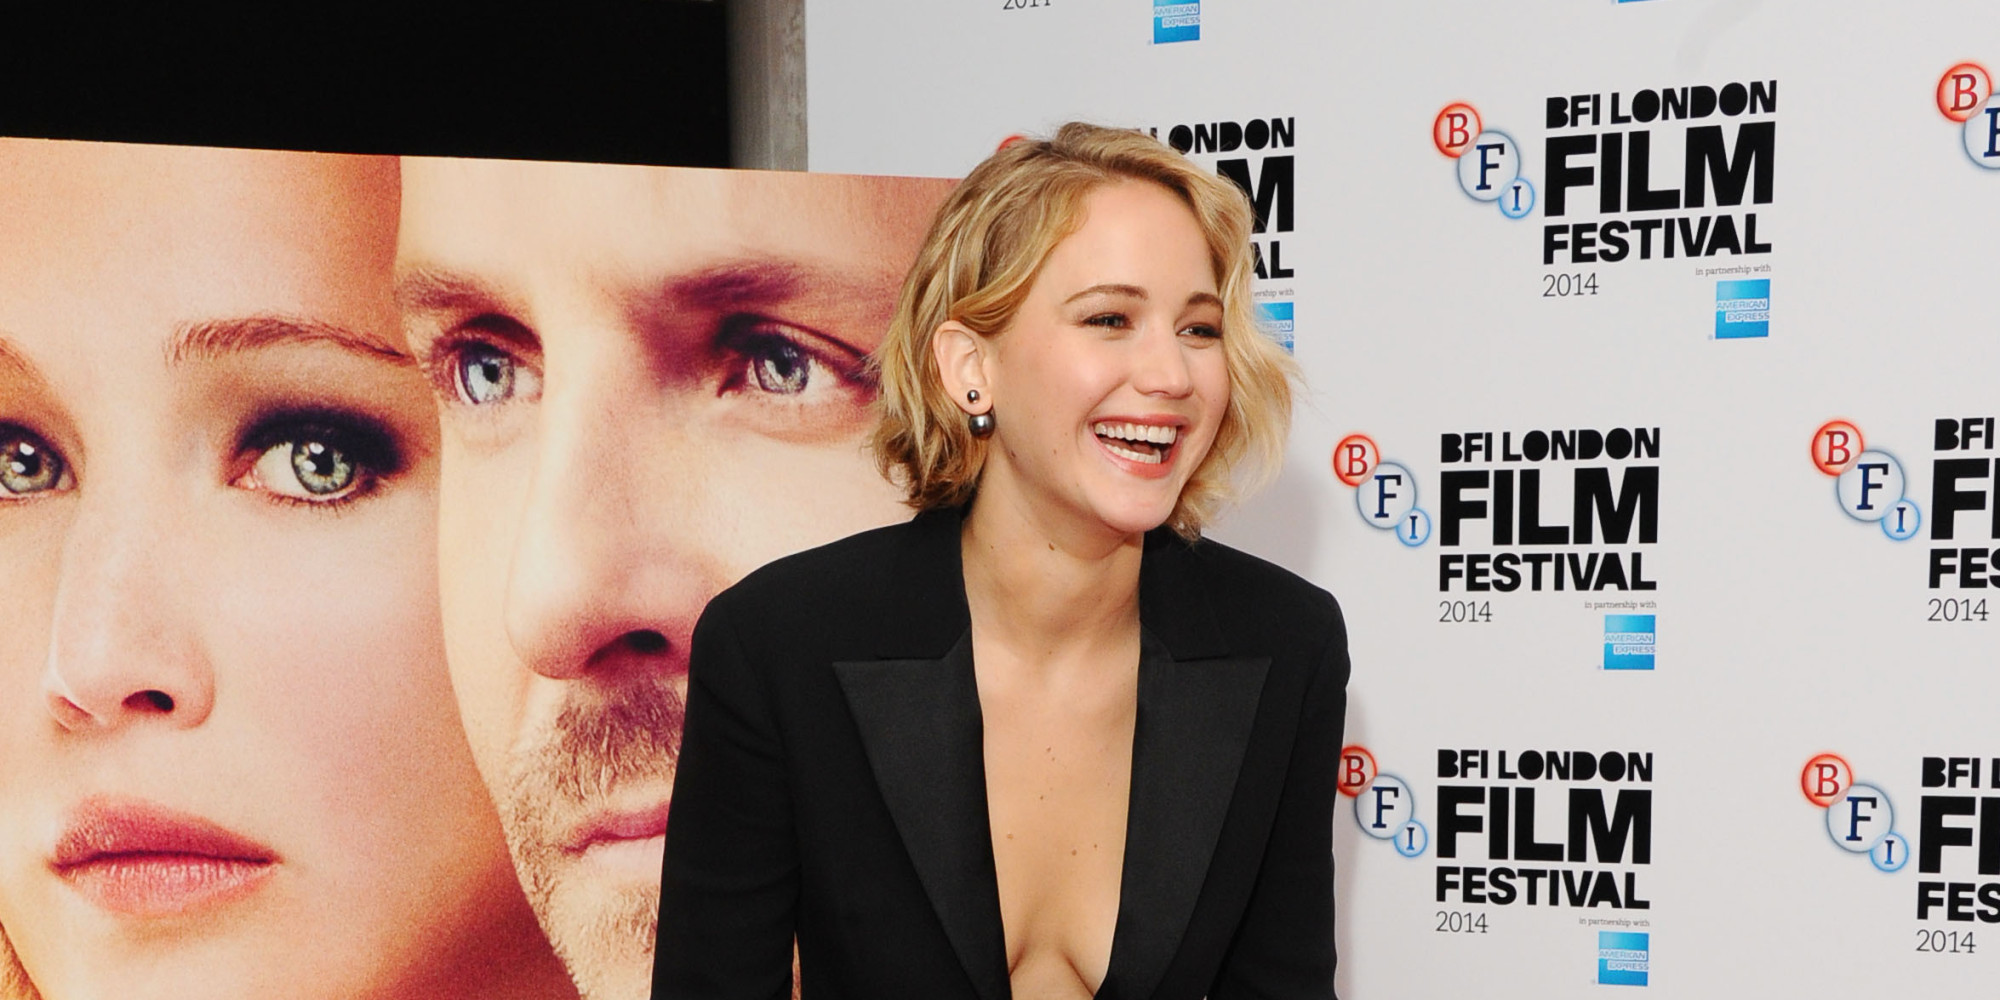 Jennifer Lawrence Takes The Plunge At 'Serena' Premiere